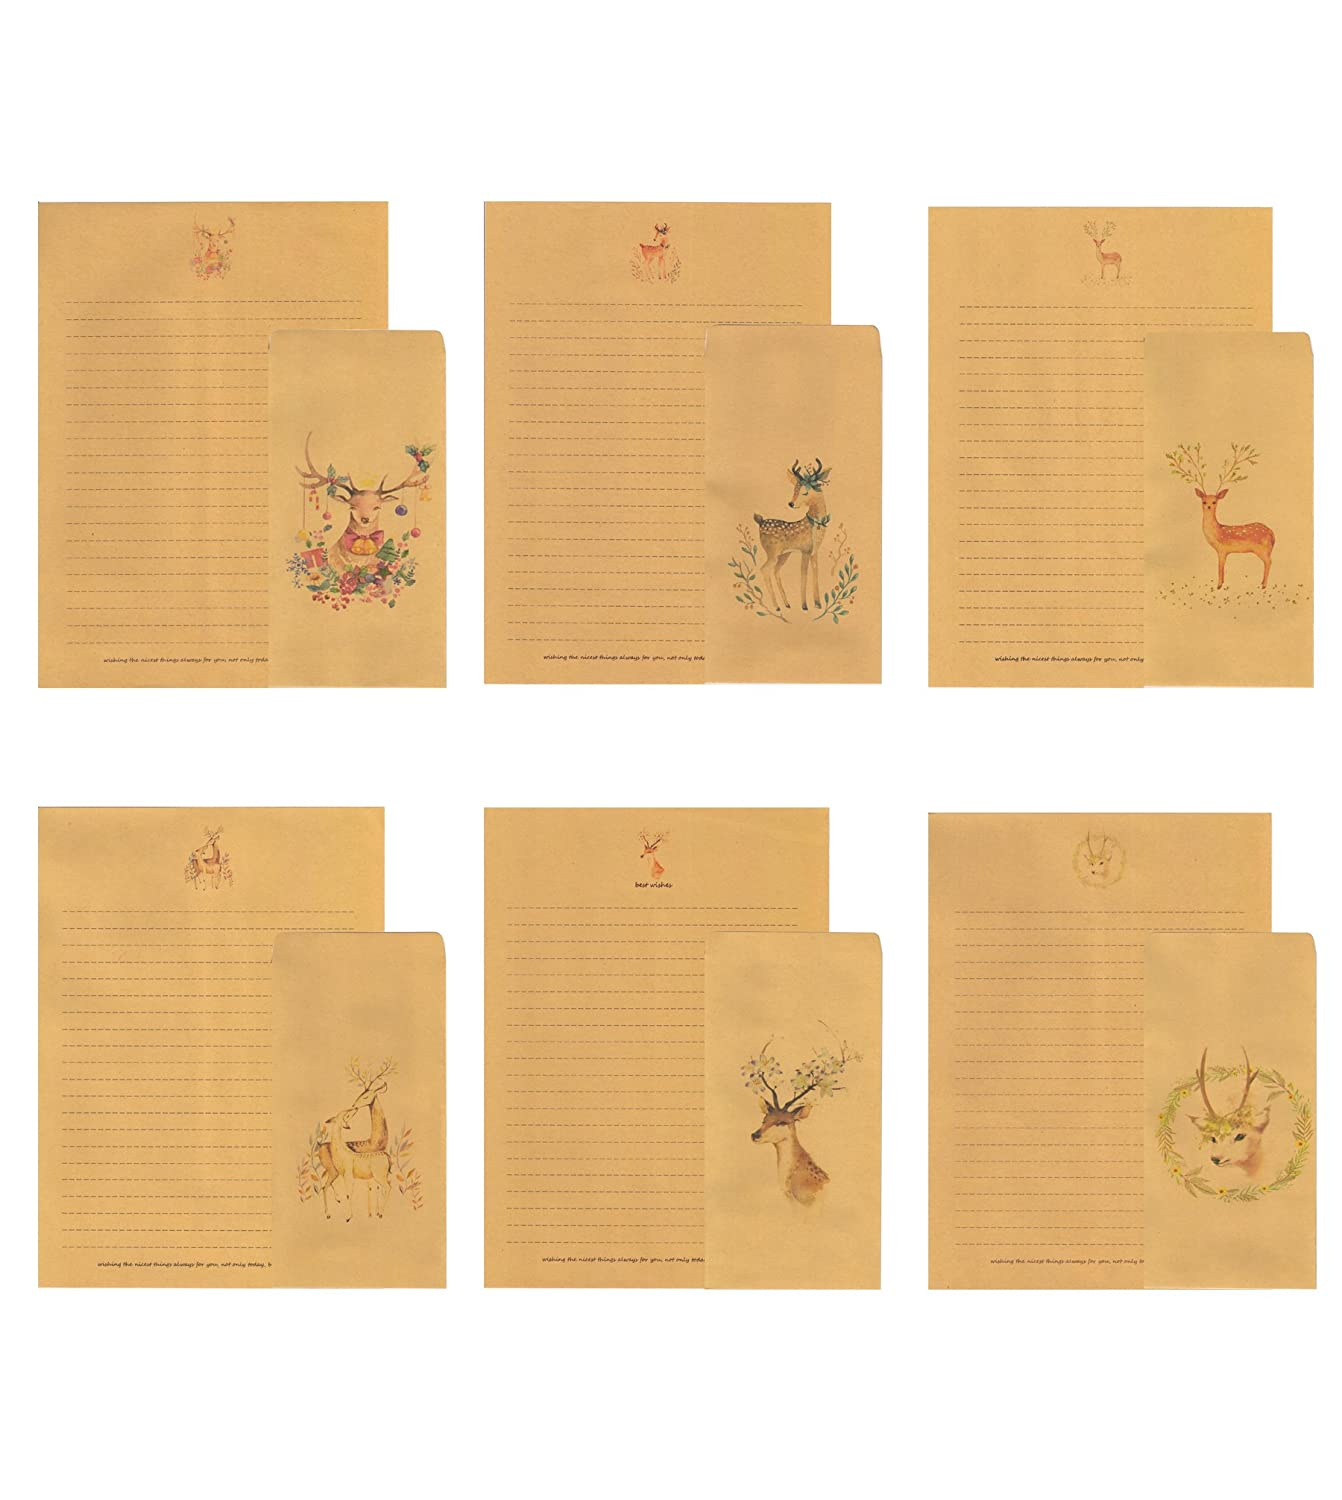 YouNee 30 Writing Stationery Paper with 30 Envelope, Vintage Deer Letter Writing Paper Sets, 6 Pattern